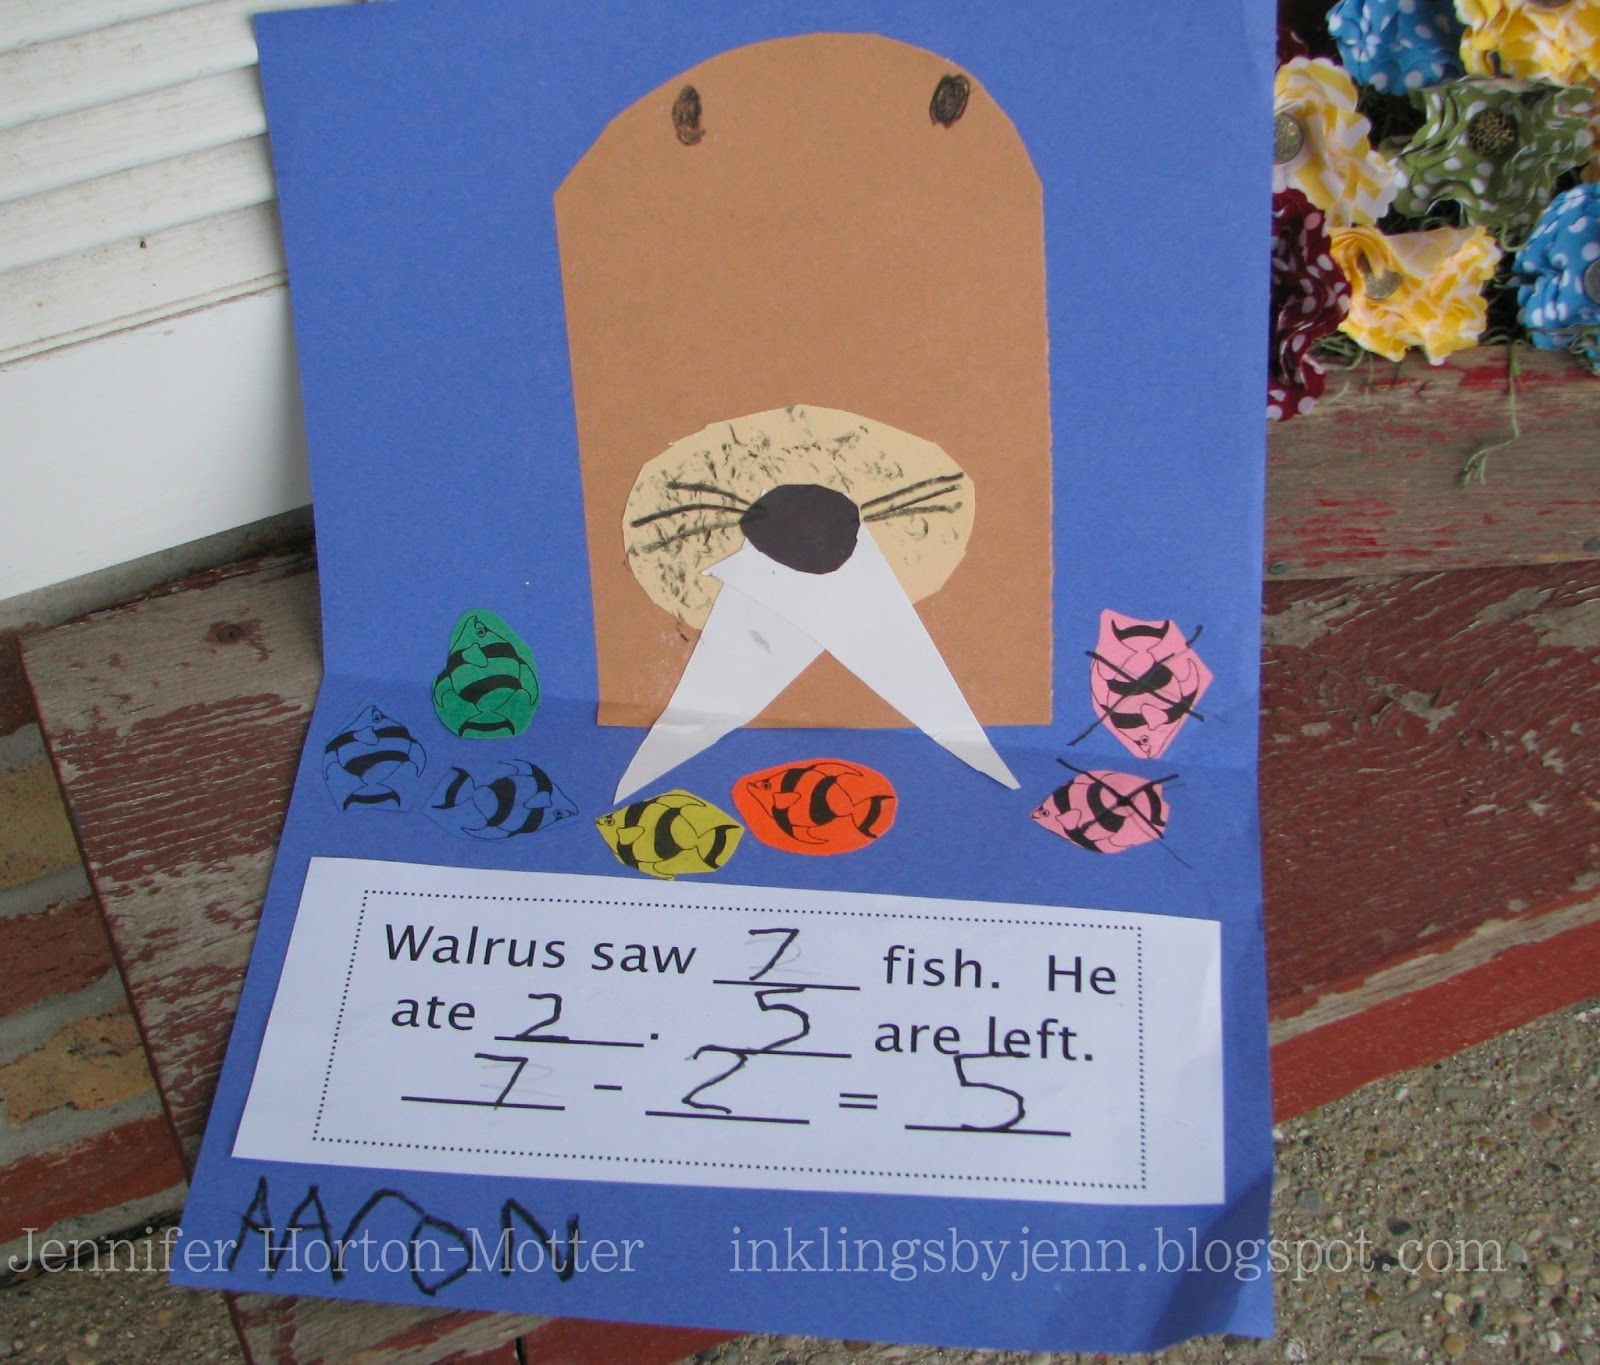 INKlings by Jenn - construction paper walrus (letter Ww as well as subtraction)